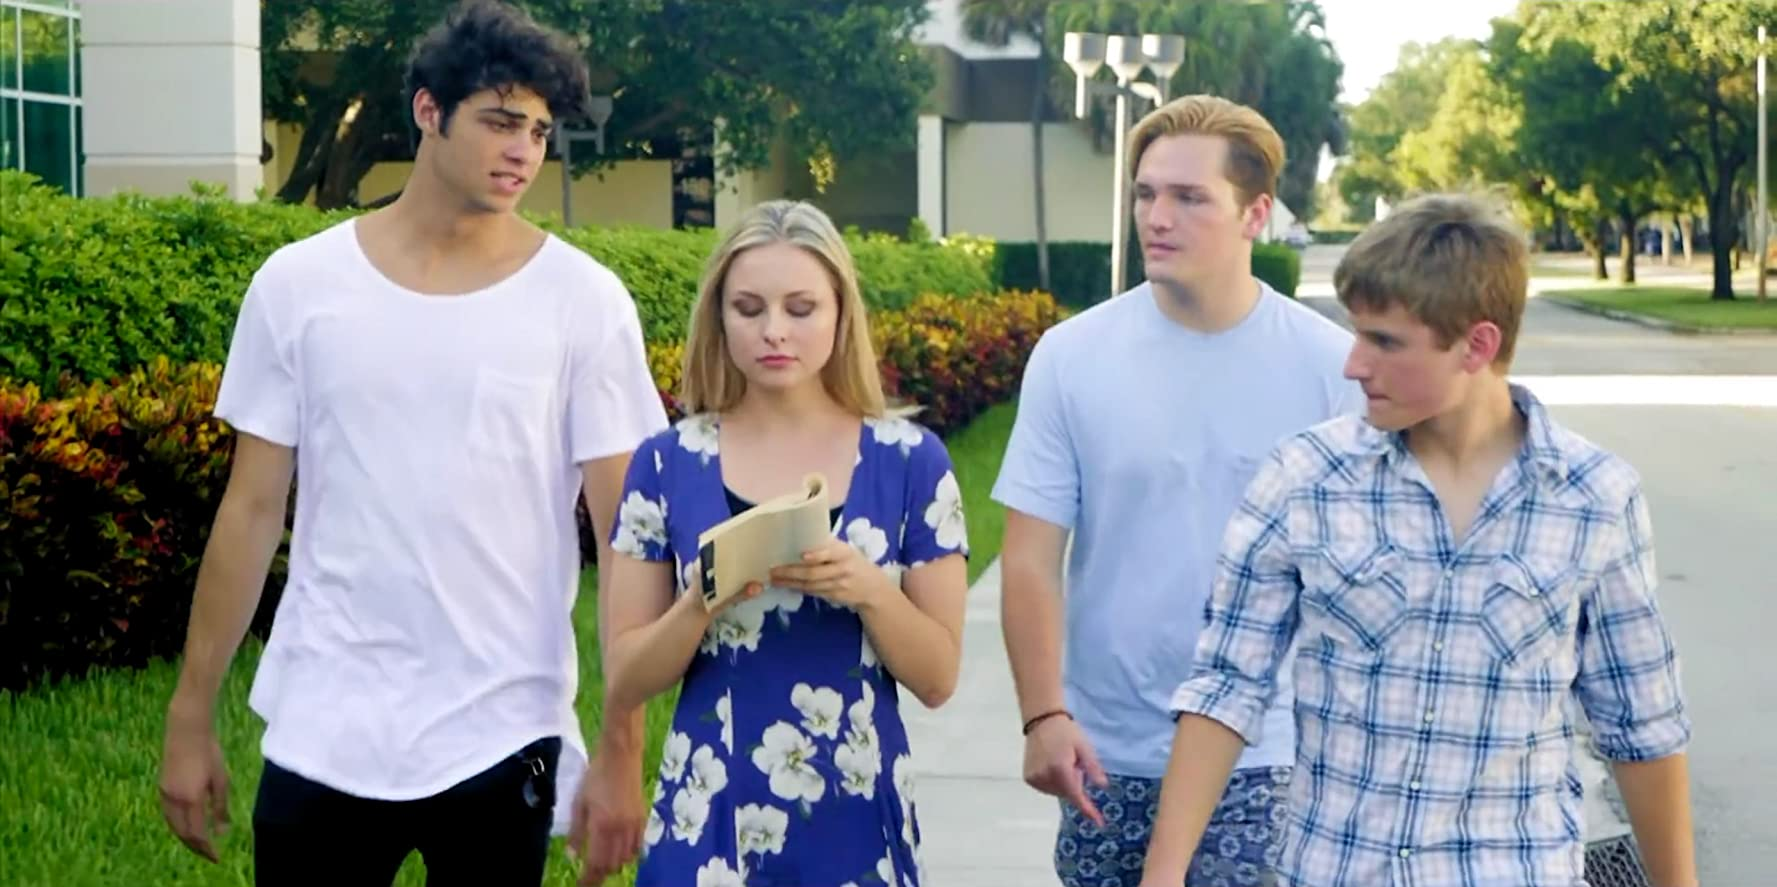 Christian Hutcherson, Nathan Gamble, Noah Centineo, and Shelby Wulfert in Swiped (2018)